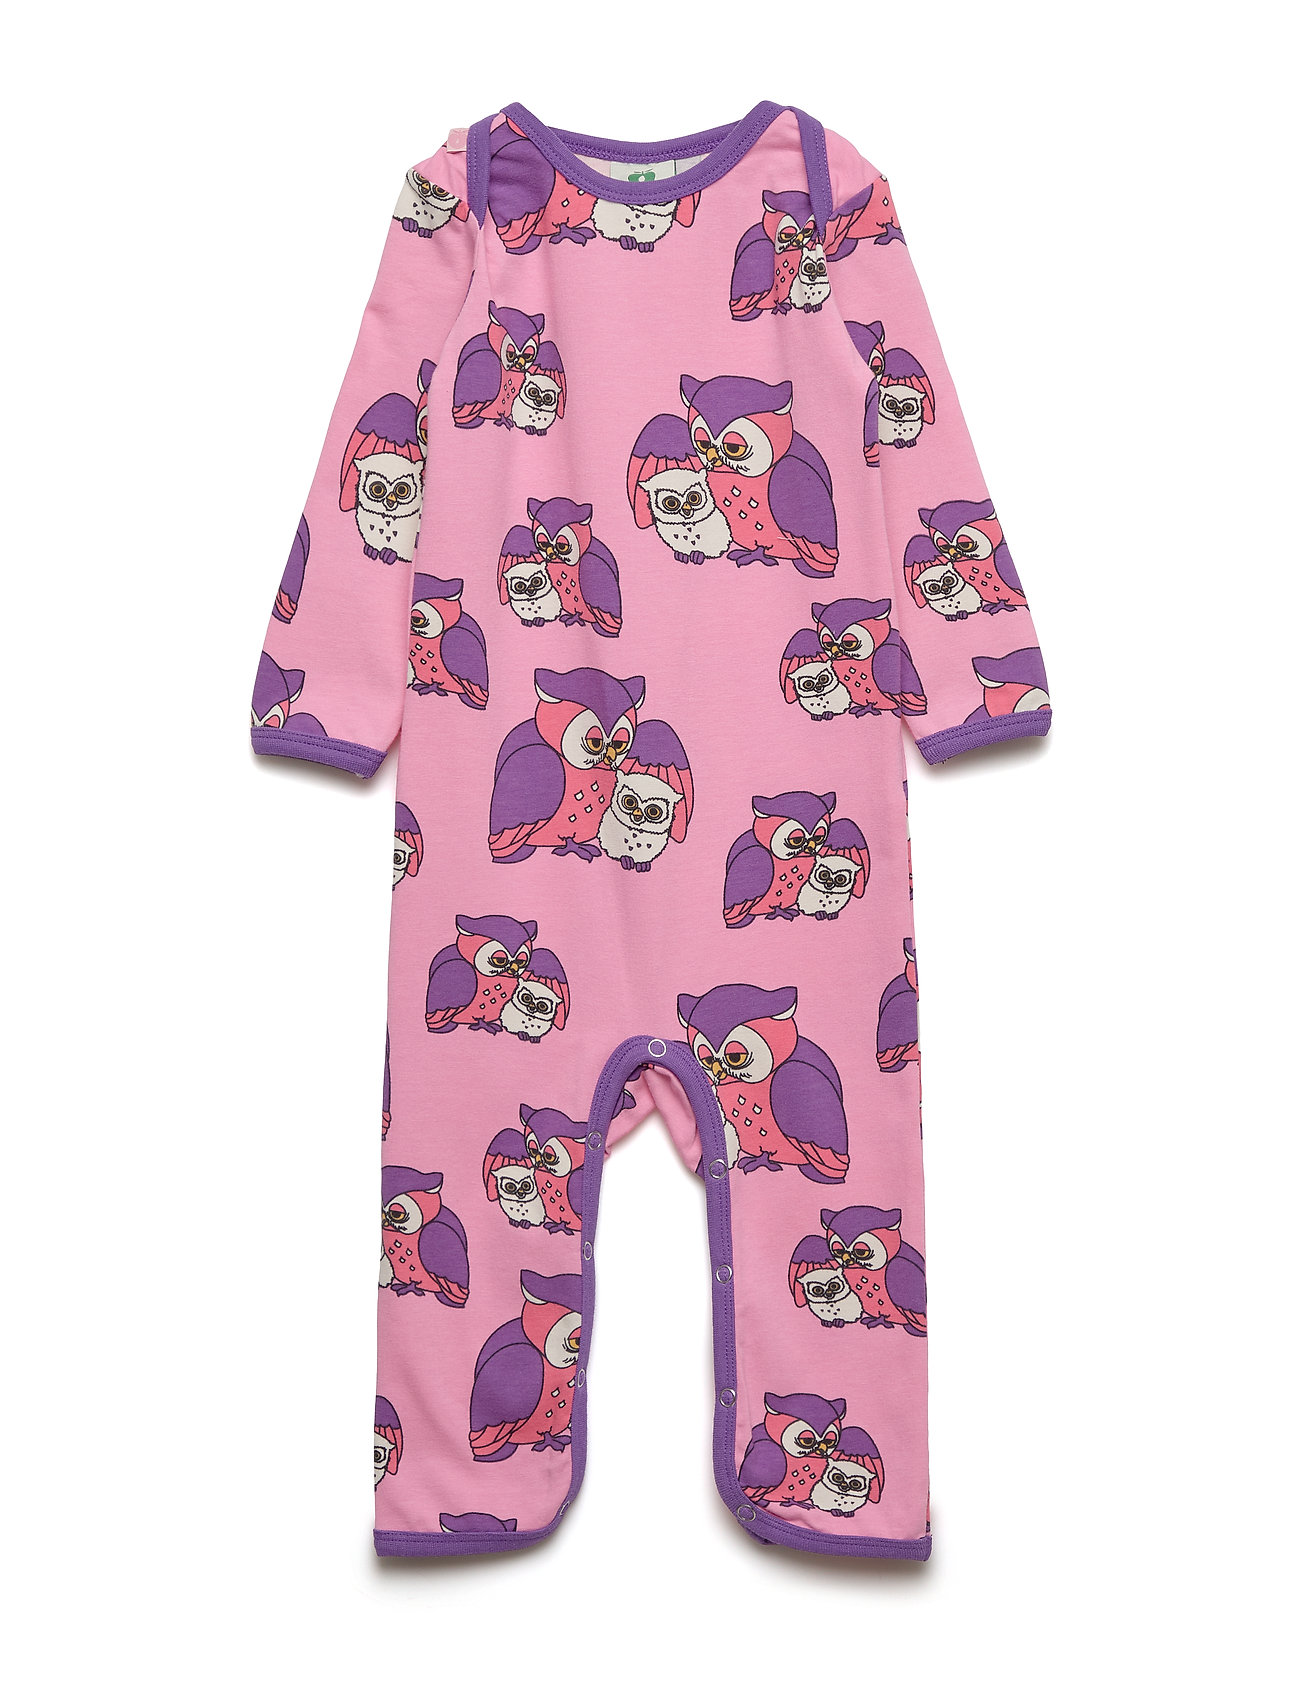 Småfolk Body Suit, Owl - SEA PINK